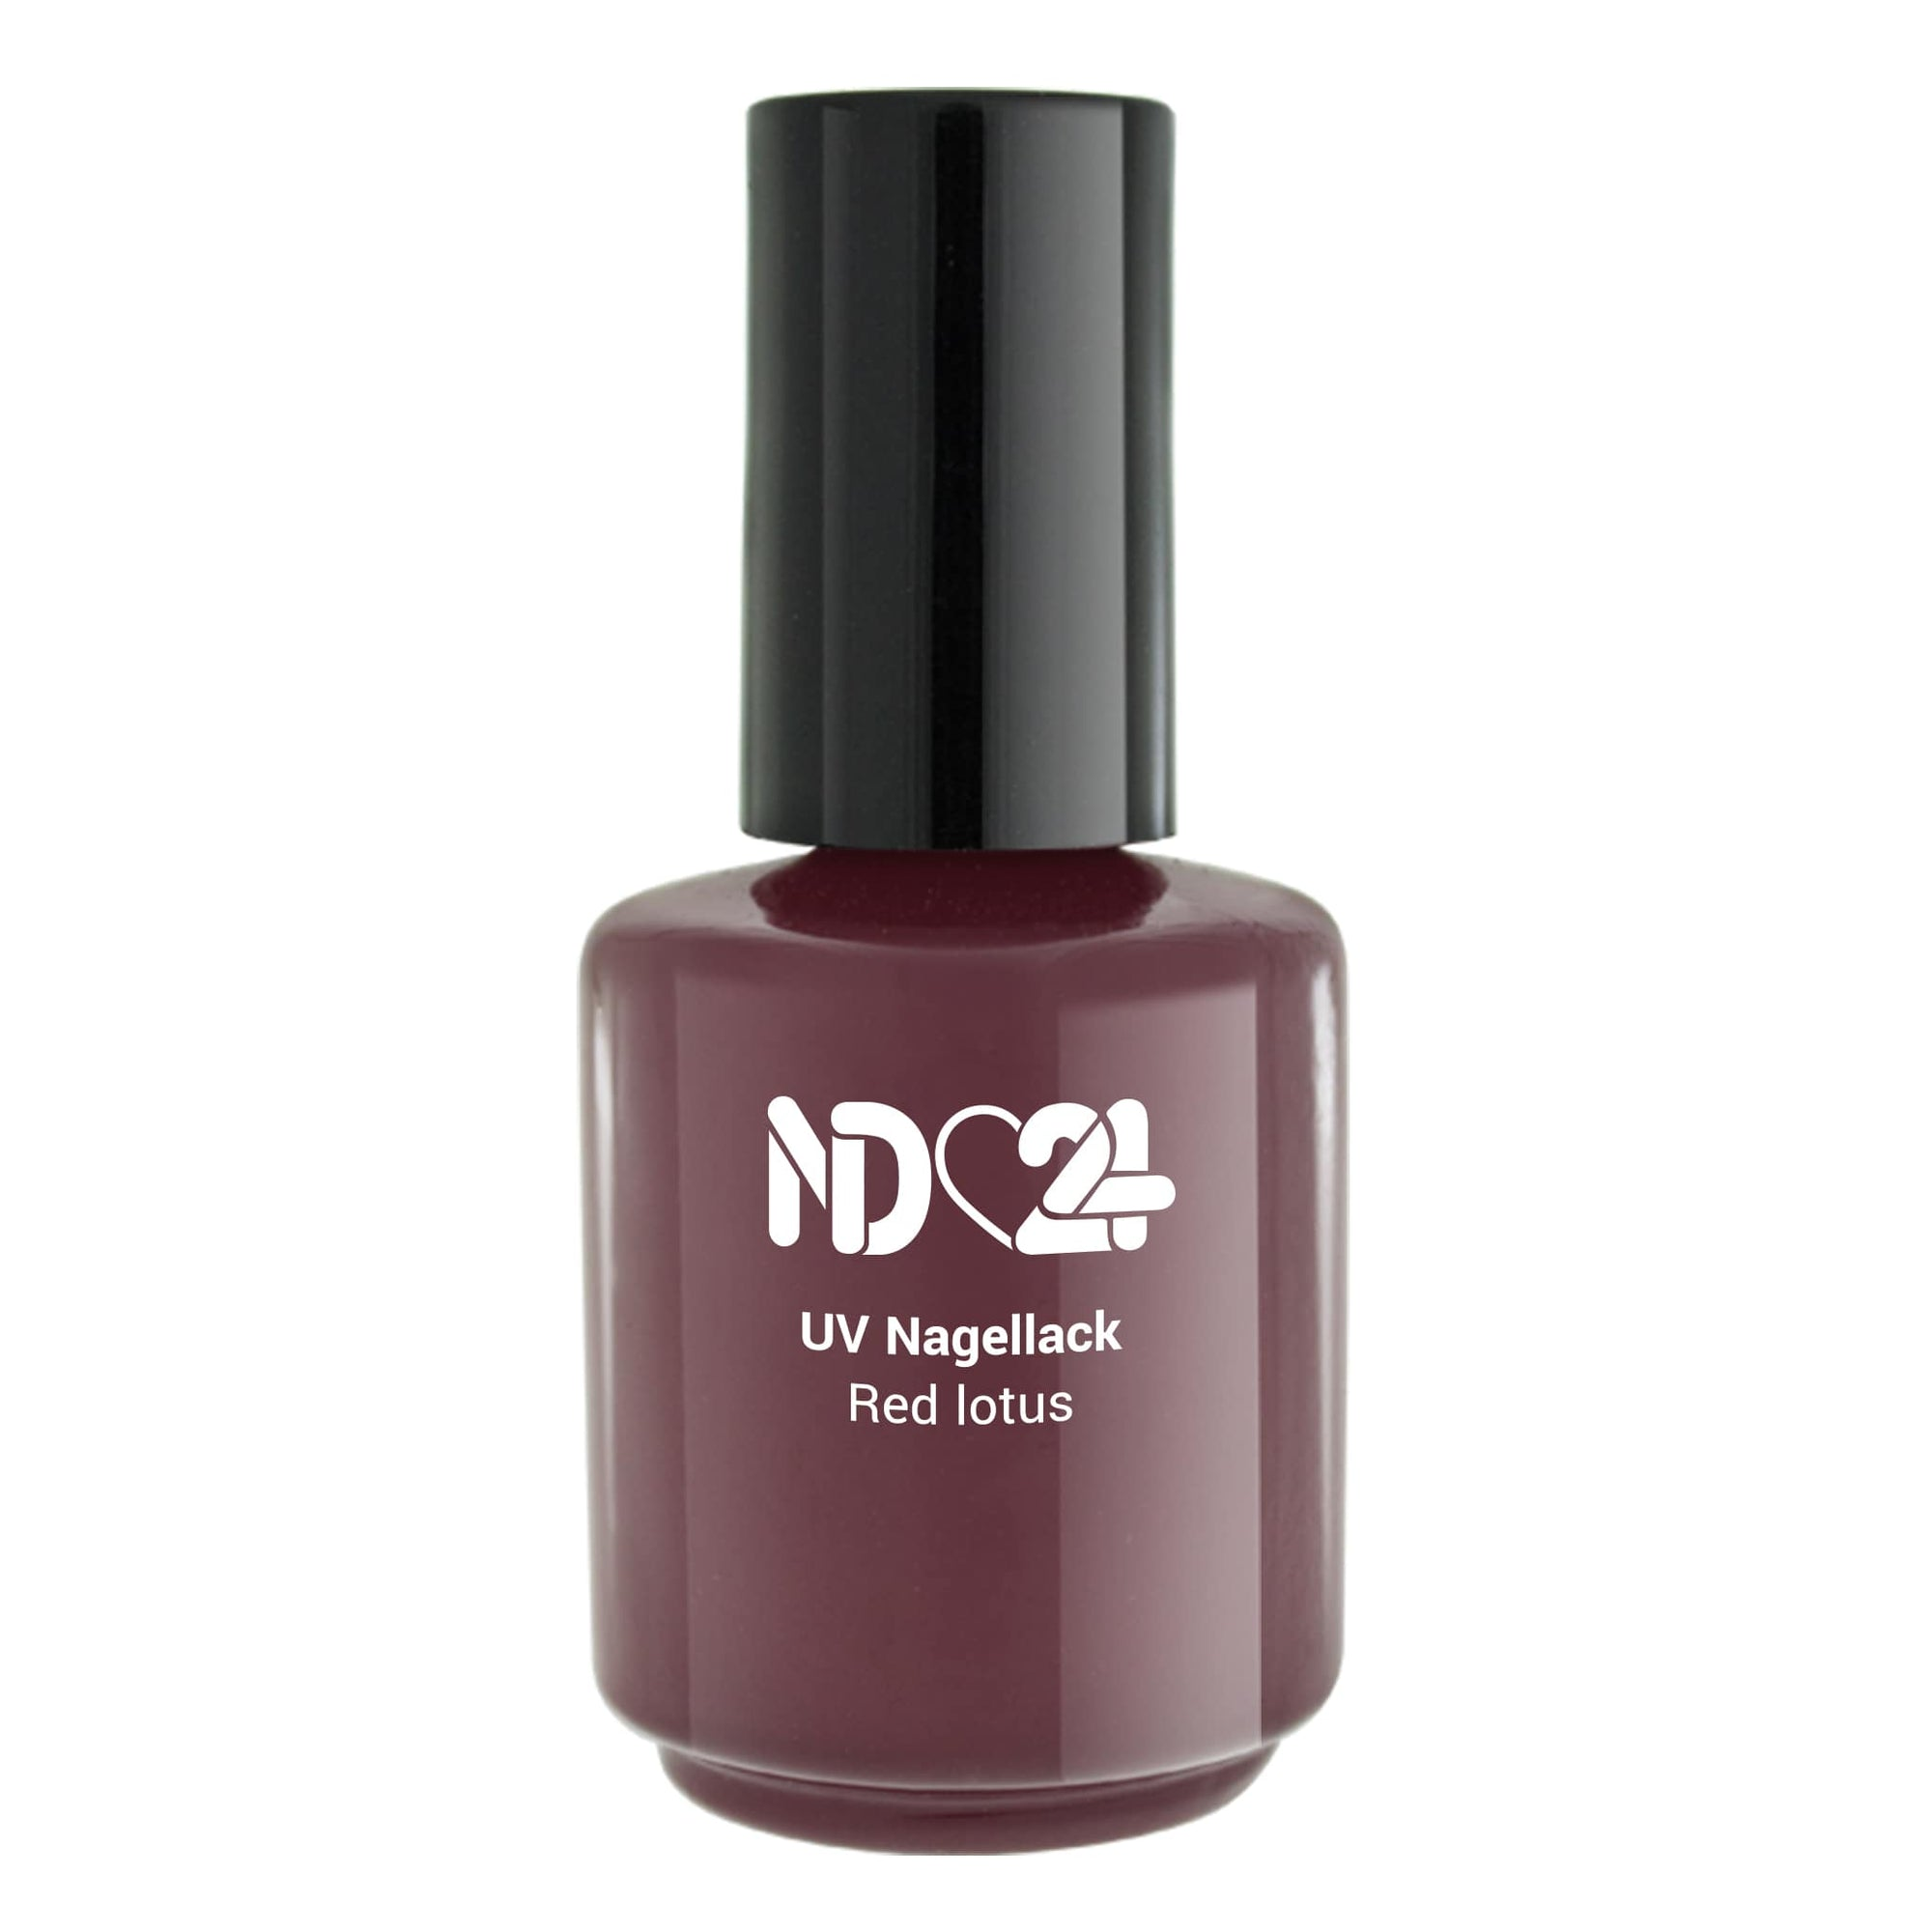 UV Nagellack Red lotus